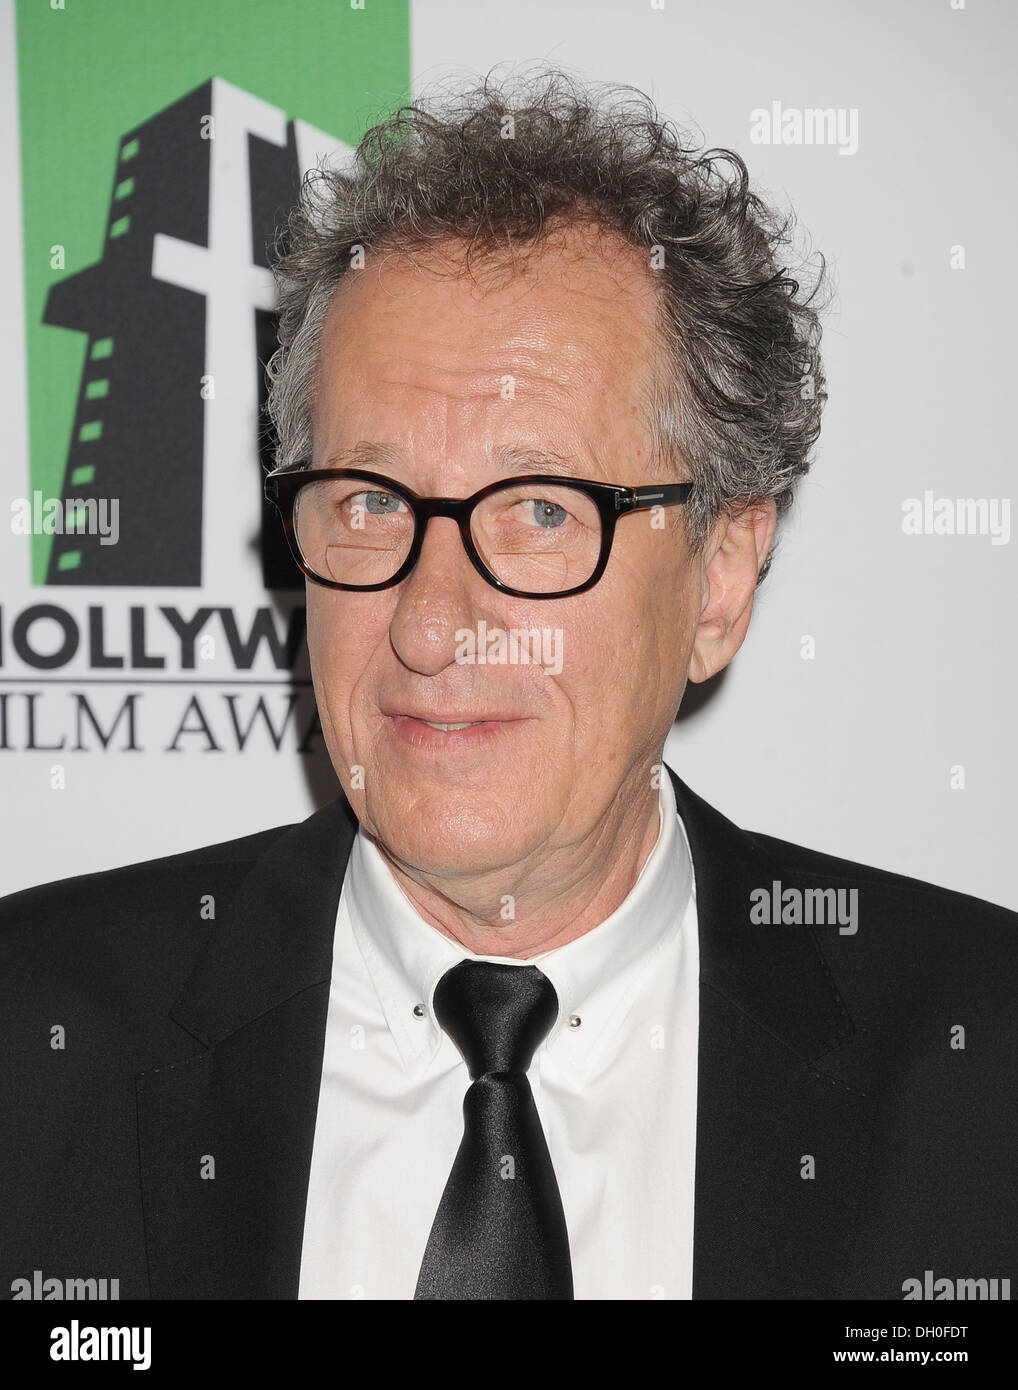 GEOFFREY RUSH Australian film actor in October 2013. Photo Jeffrey Mayer - Stock Image